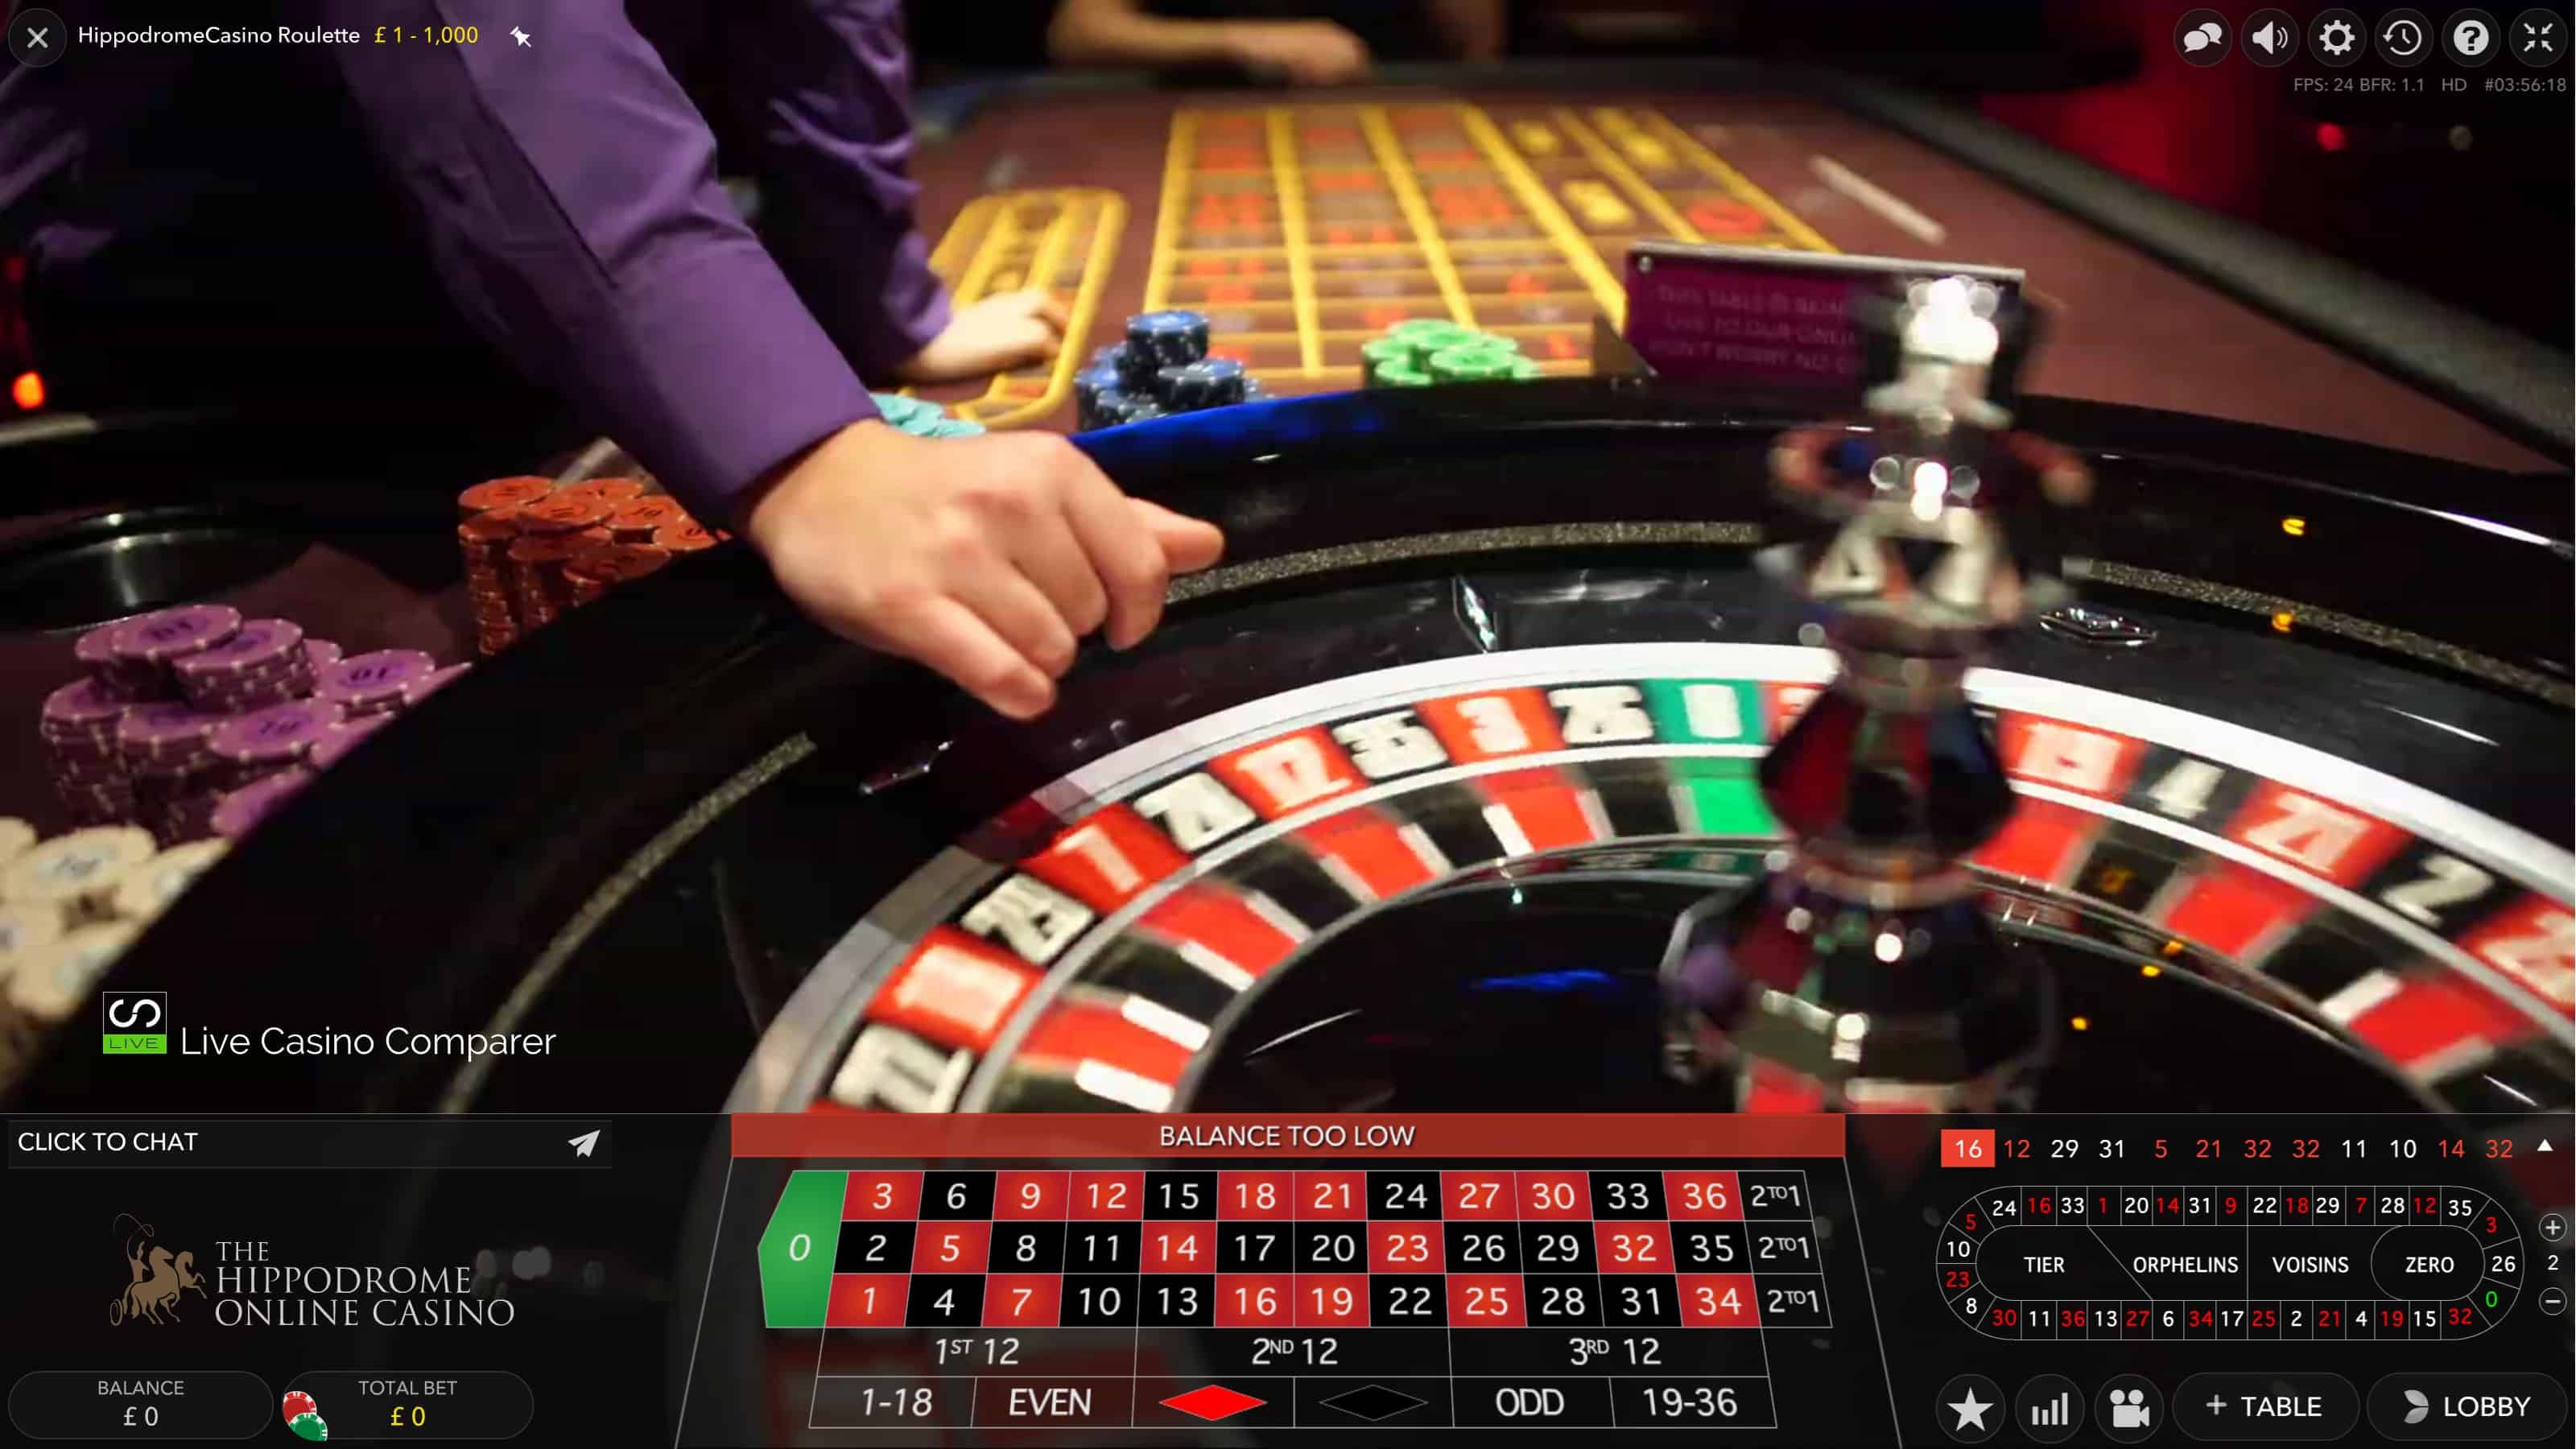 Hippodrome Land Based Casinos that stream Live Roulette